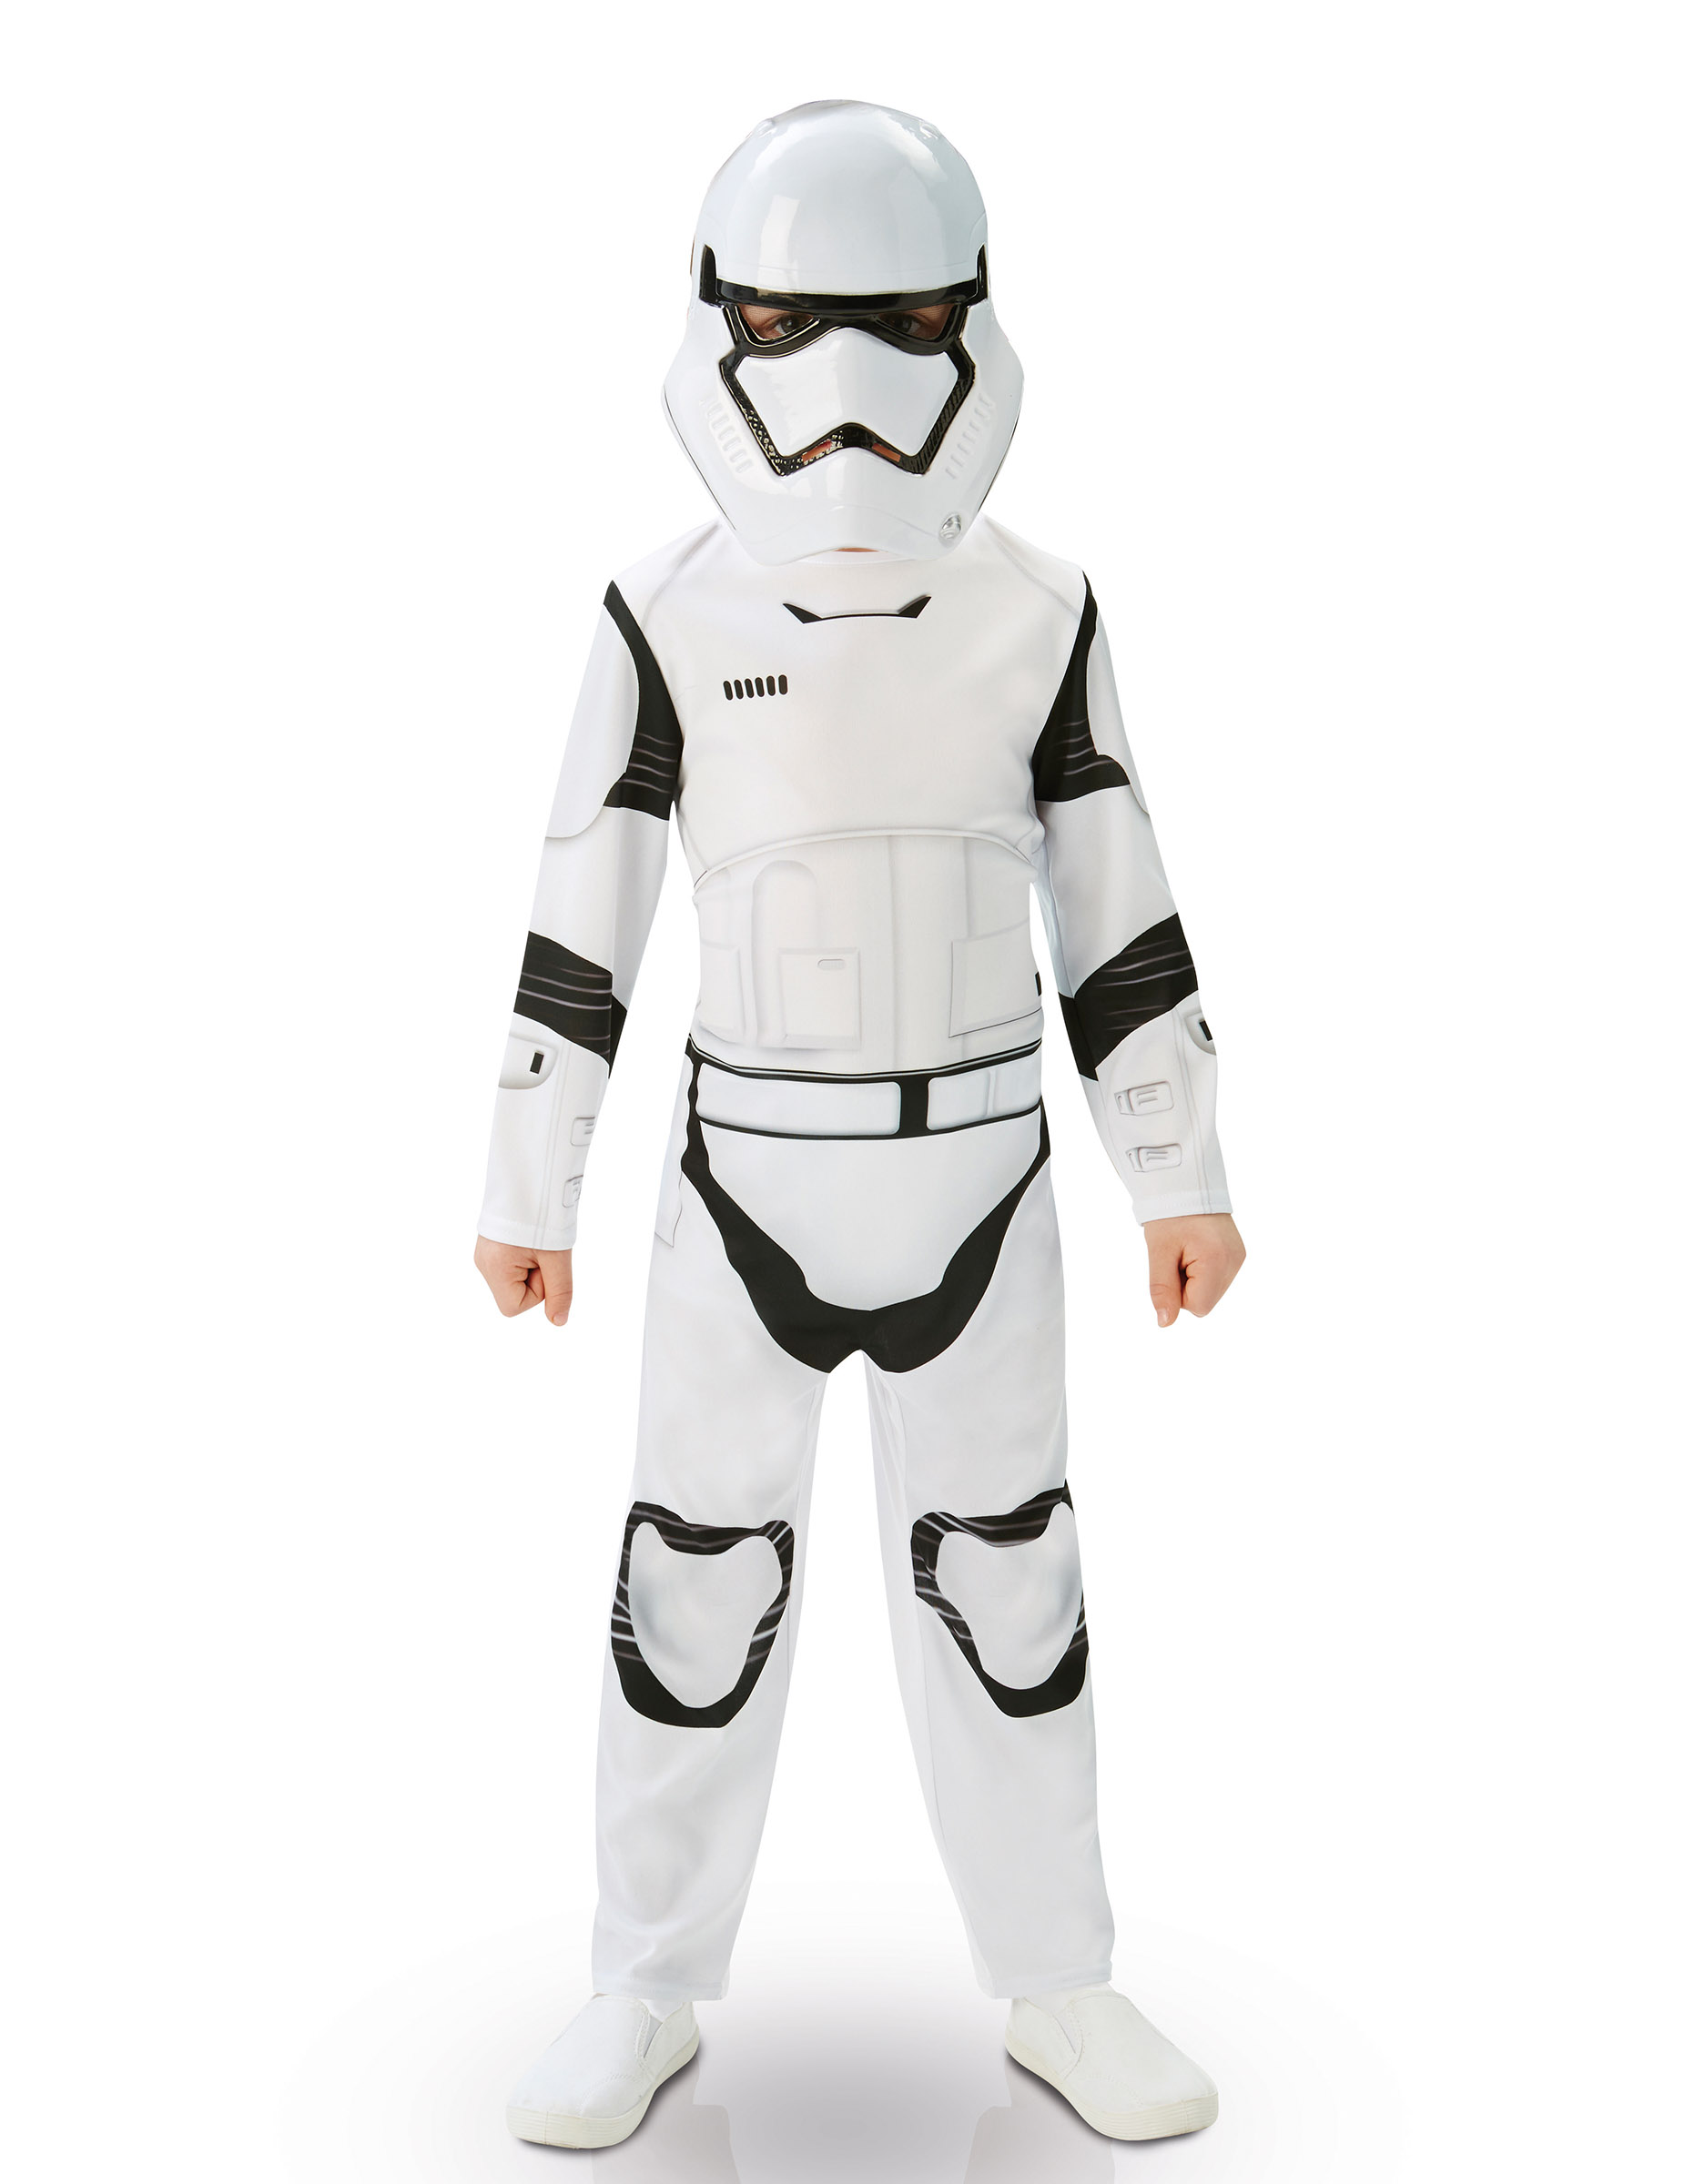 d guisement enfant stormtrooper star wars vii deguise. Black Bedroom Furniture Sets. Home Design Ideas